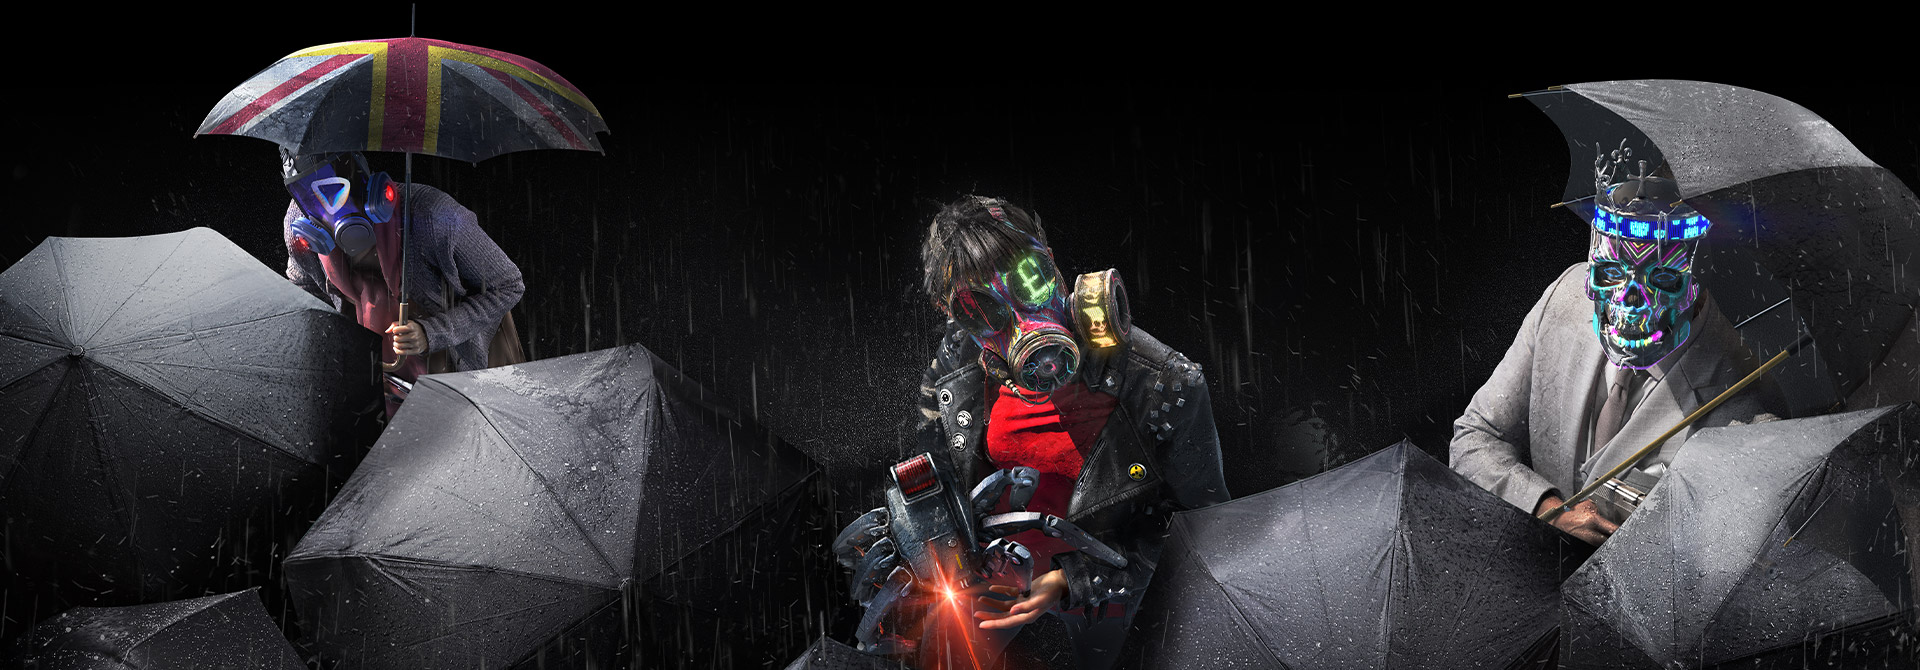 Characters from Watch Dogs: Legion among black umbrellas